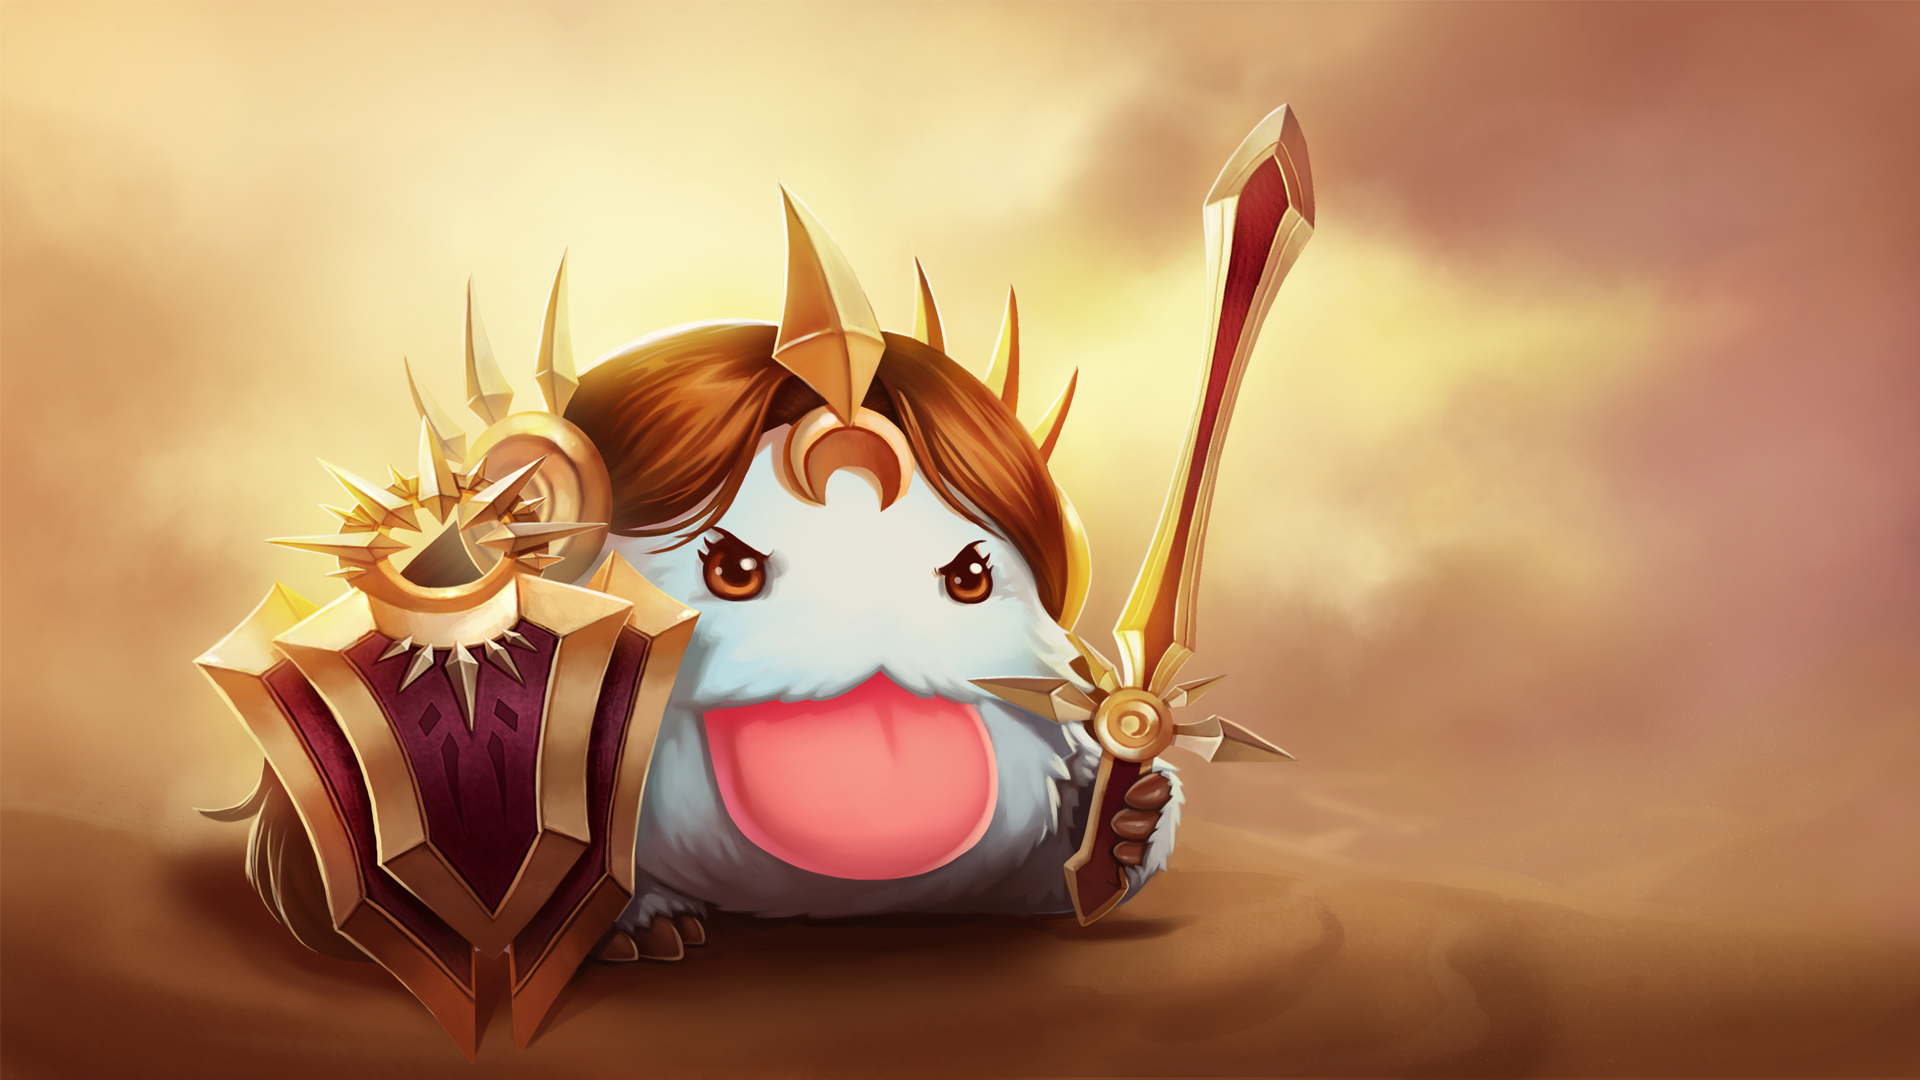 Poro Leona League Of Legends Fotografia 38308605 Fanpop